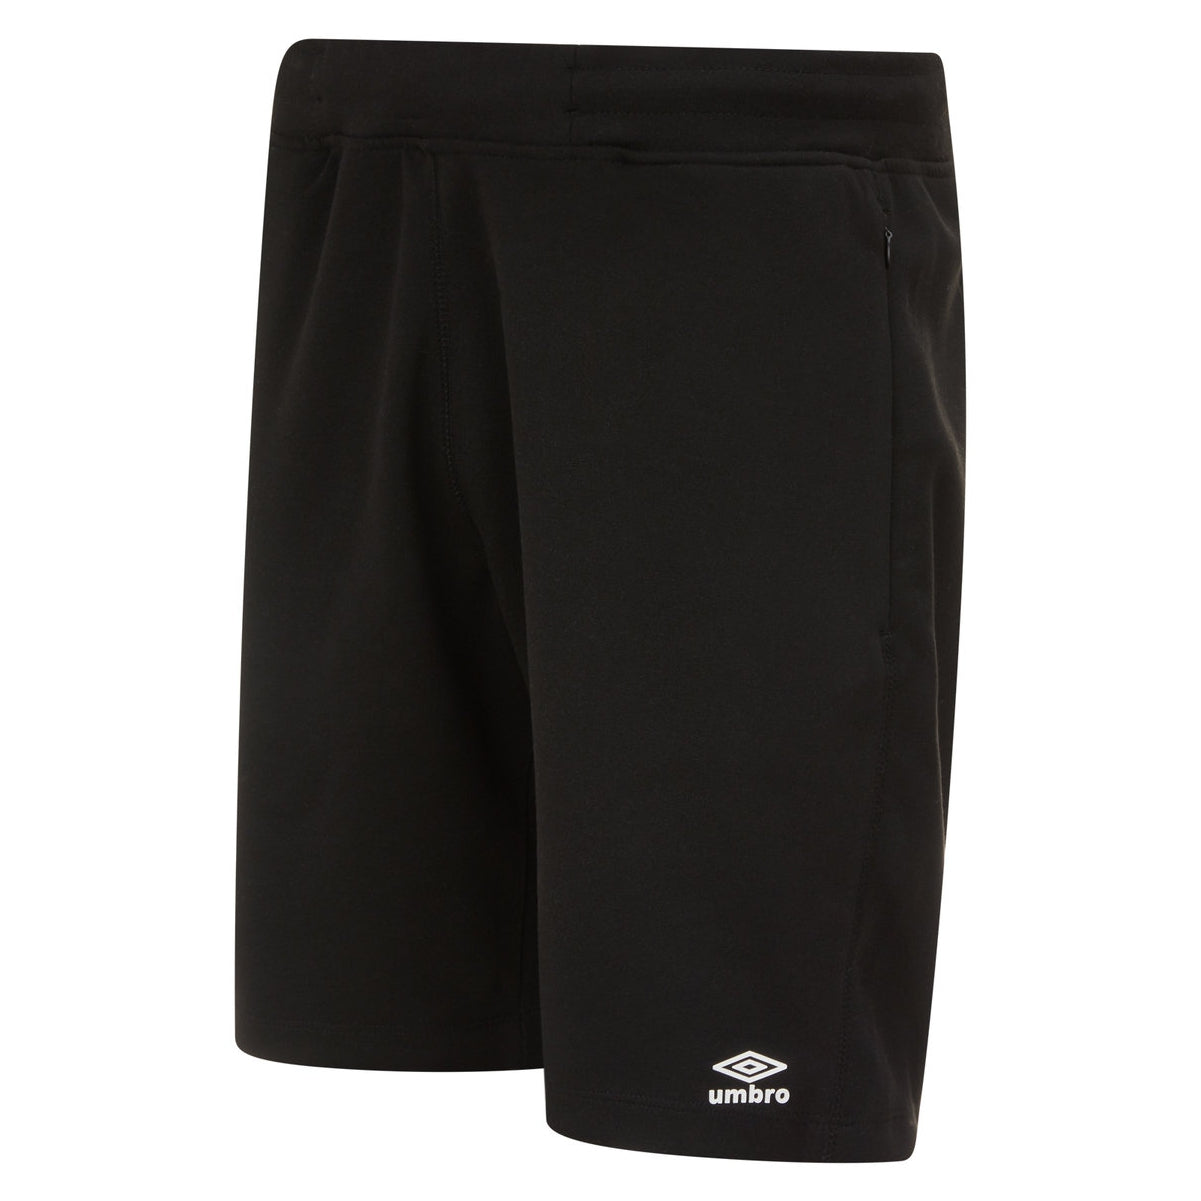 Umbro Pro Fleece short in black with white logo